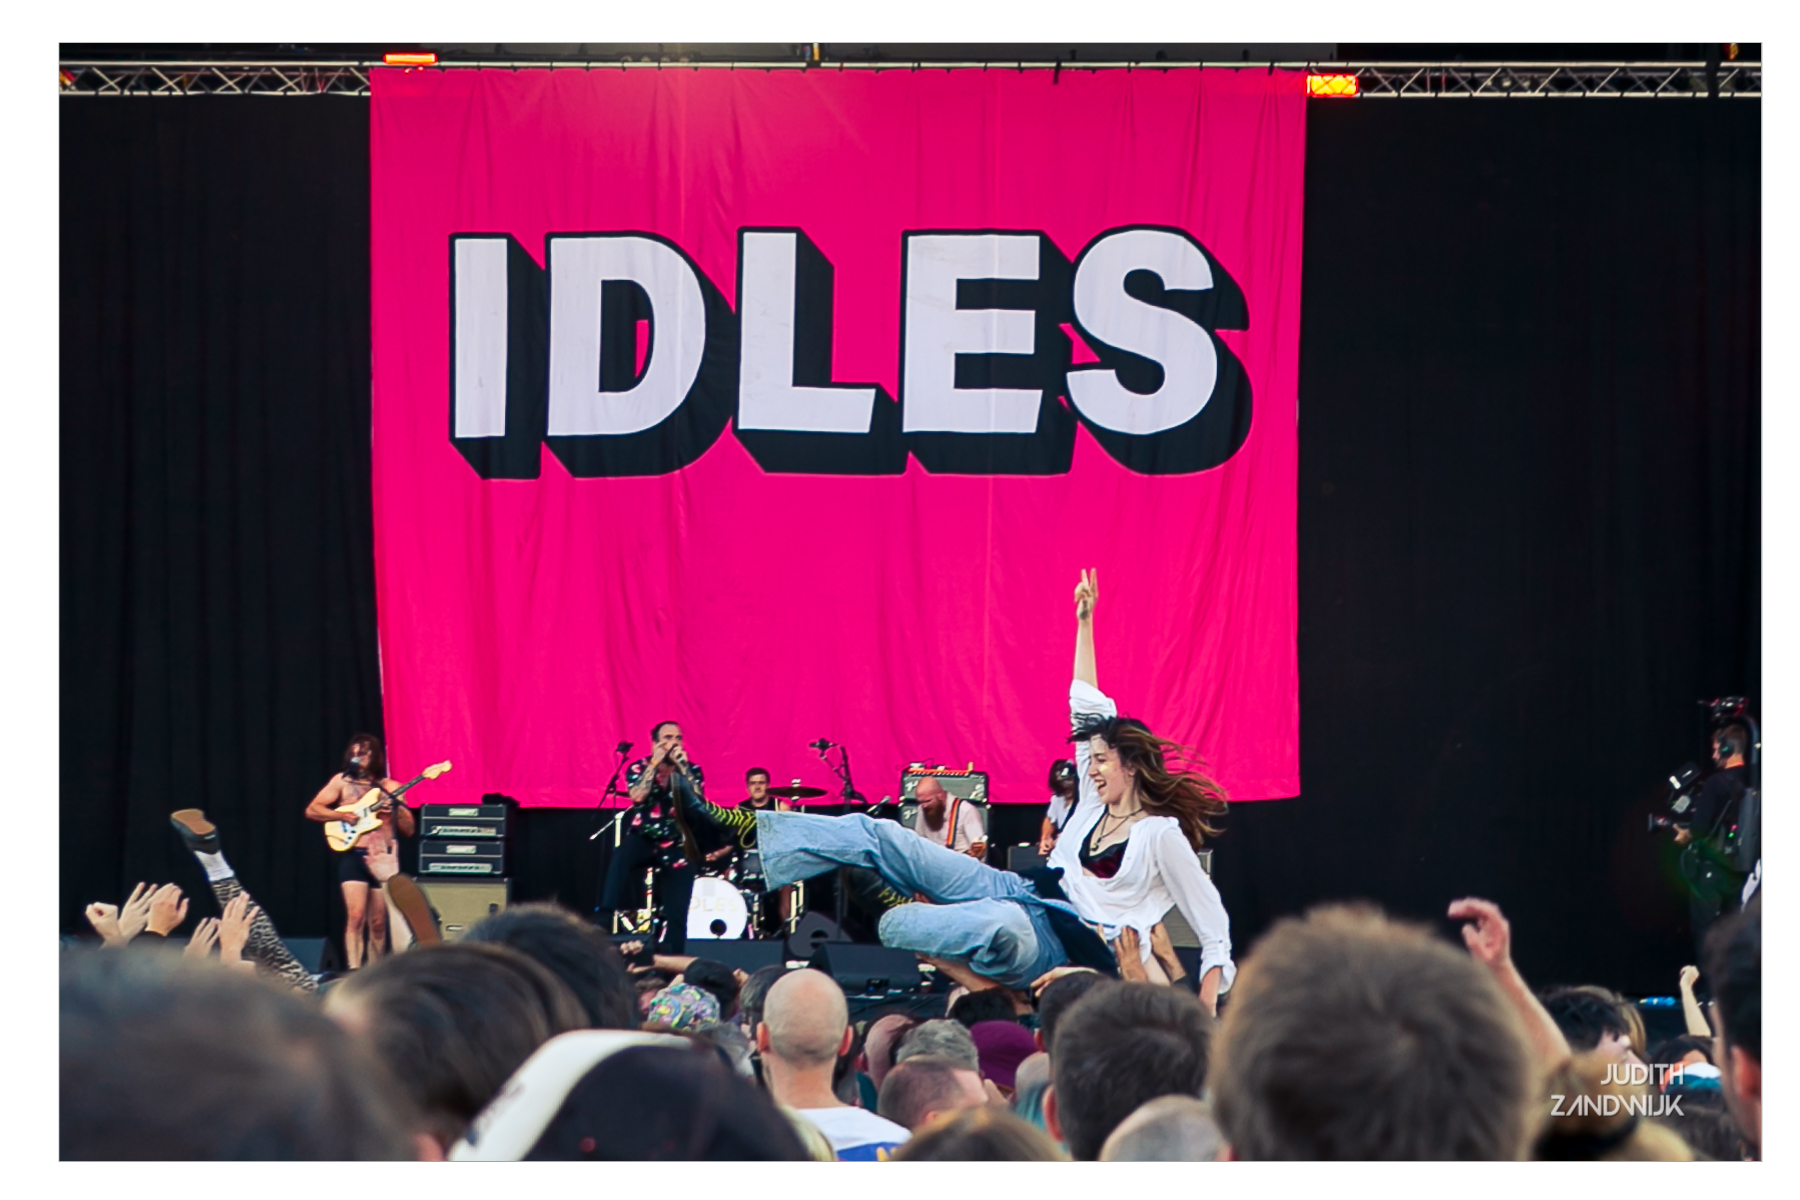 IDLES-31-08-2019 The Downs Bristol-ATL-@Judith Zandwijk 01 (4)